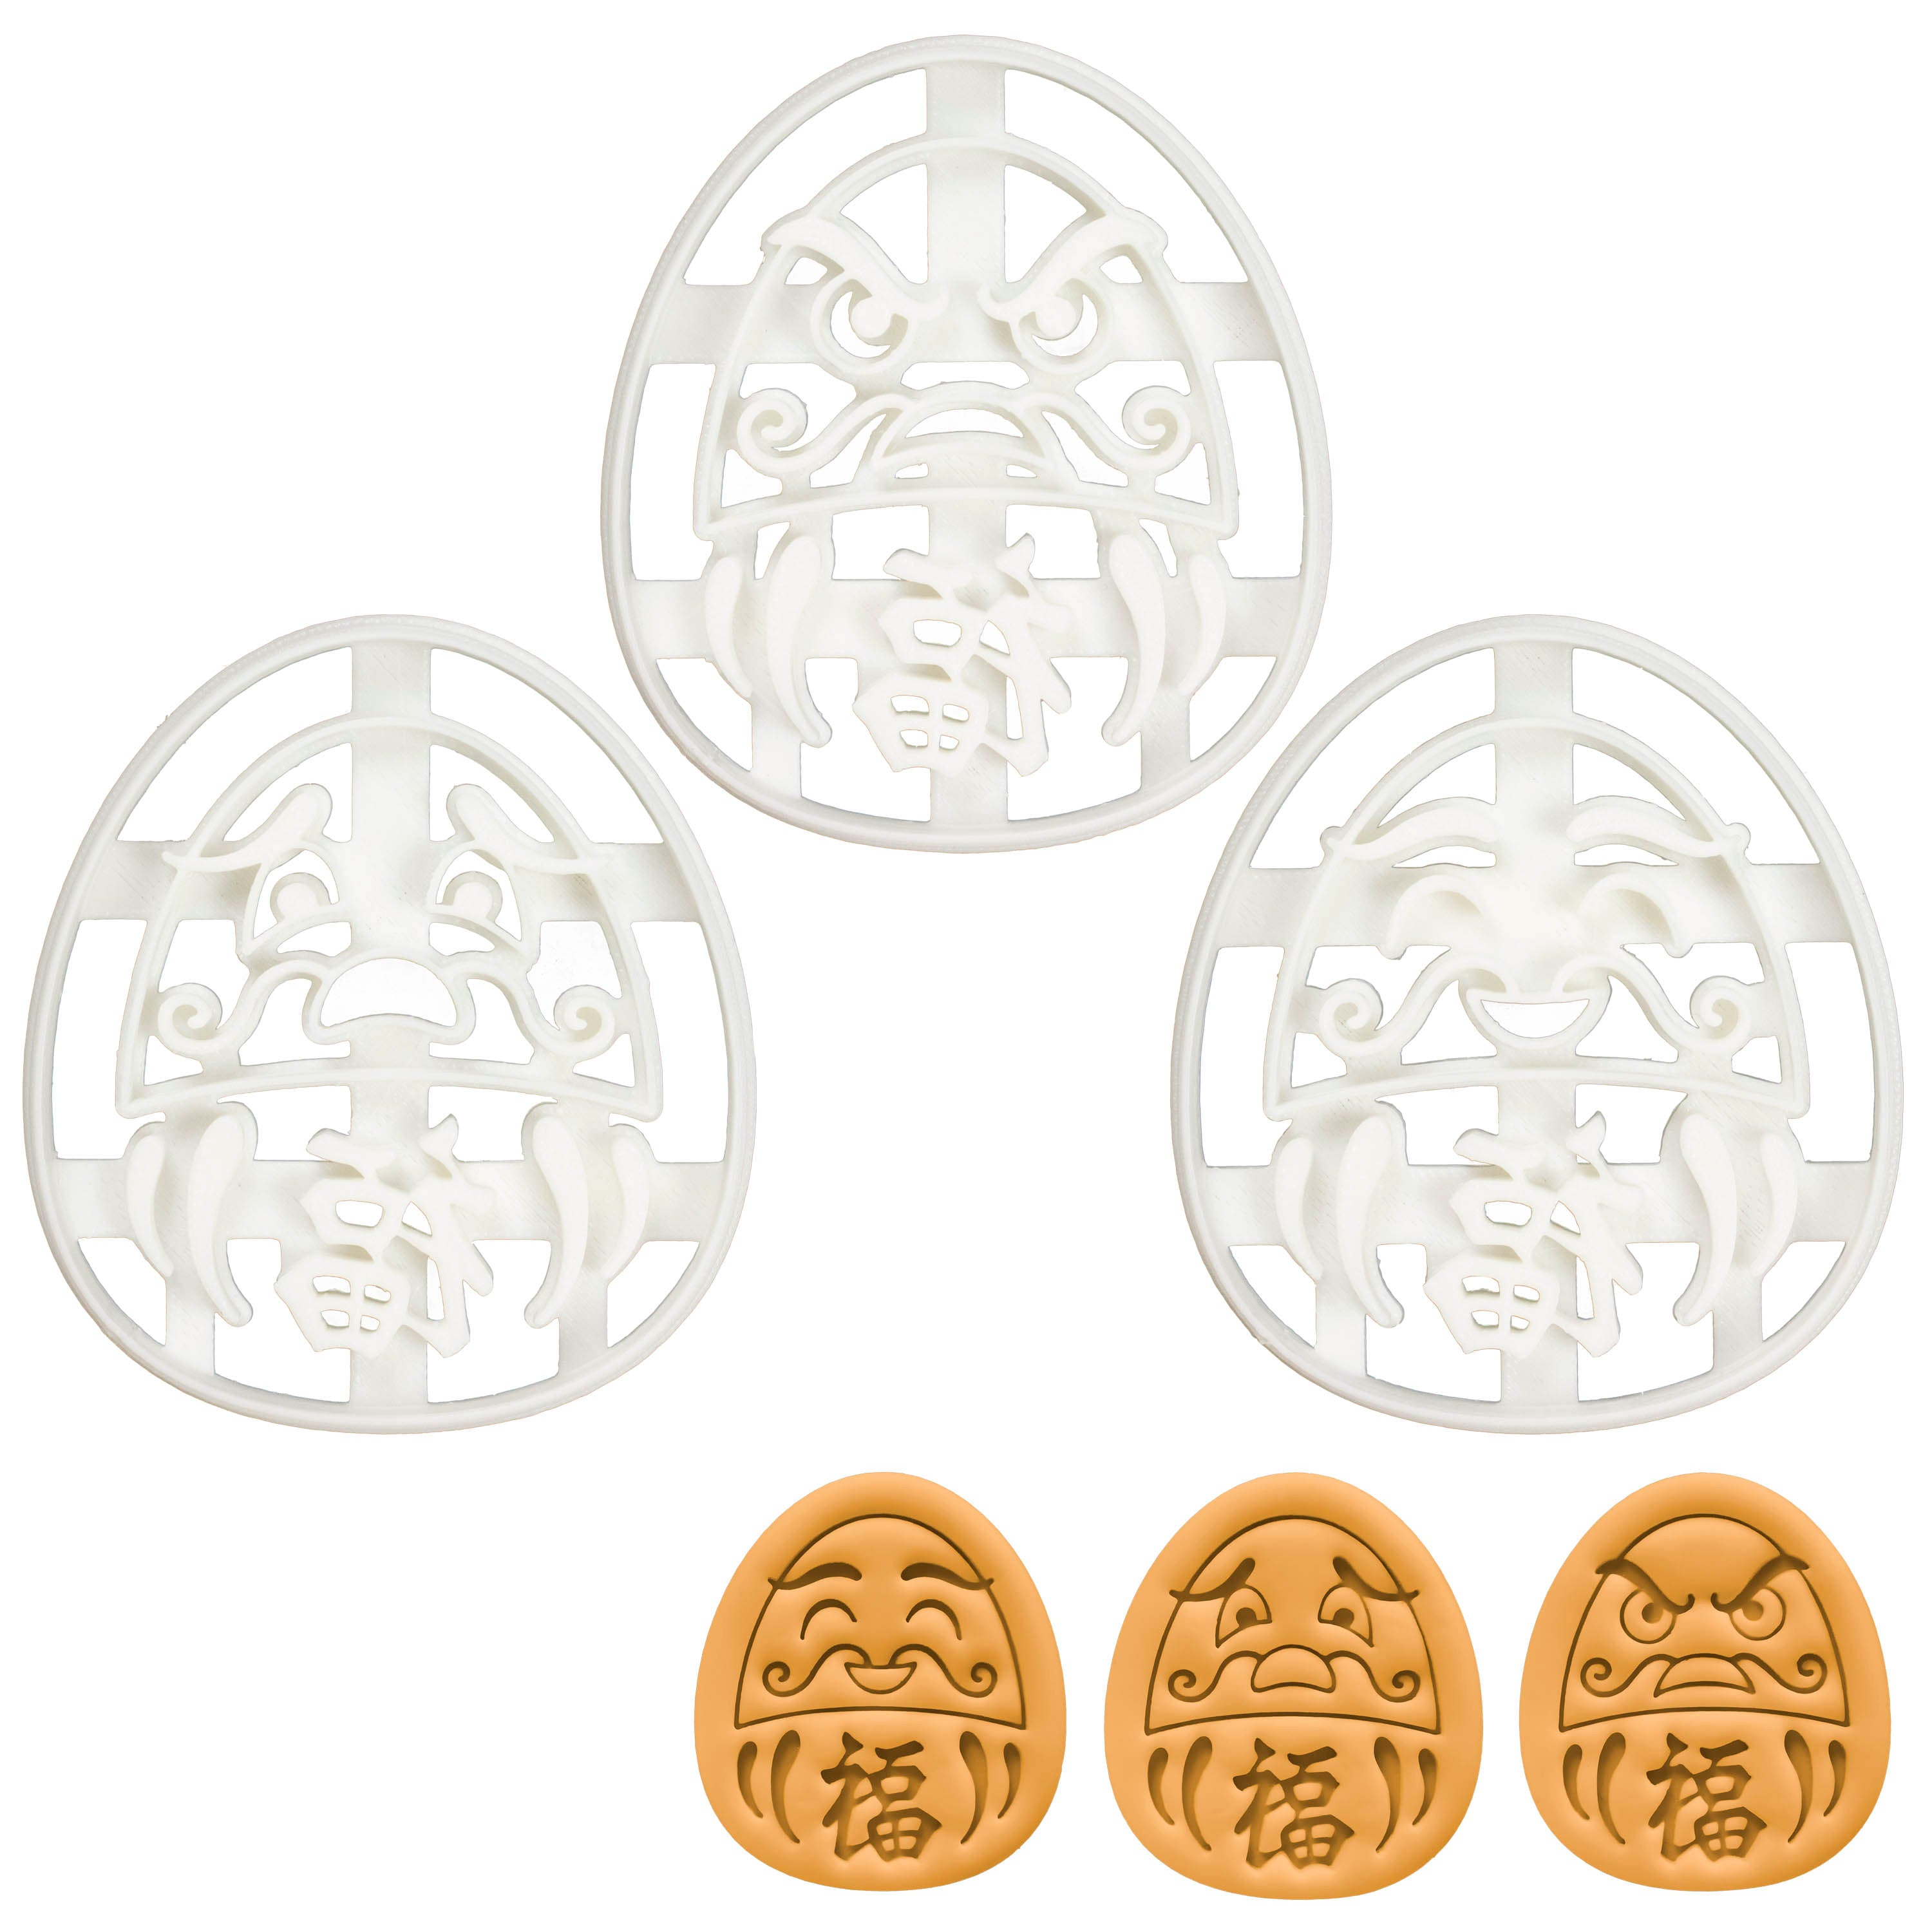 Set of 3 Daruma Doll cookie cutters (Designs: Angry, Happy, Worried)